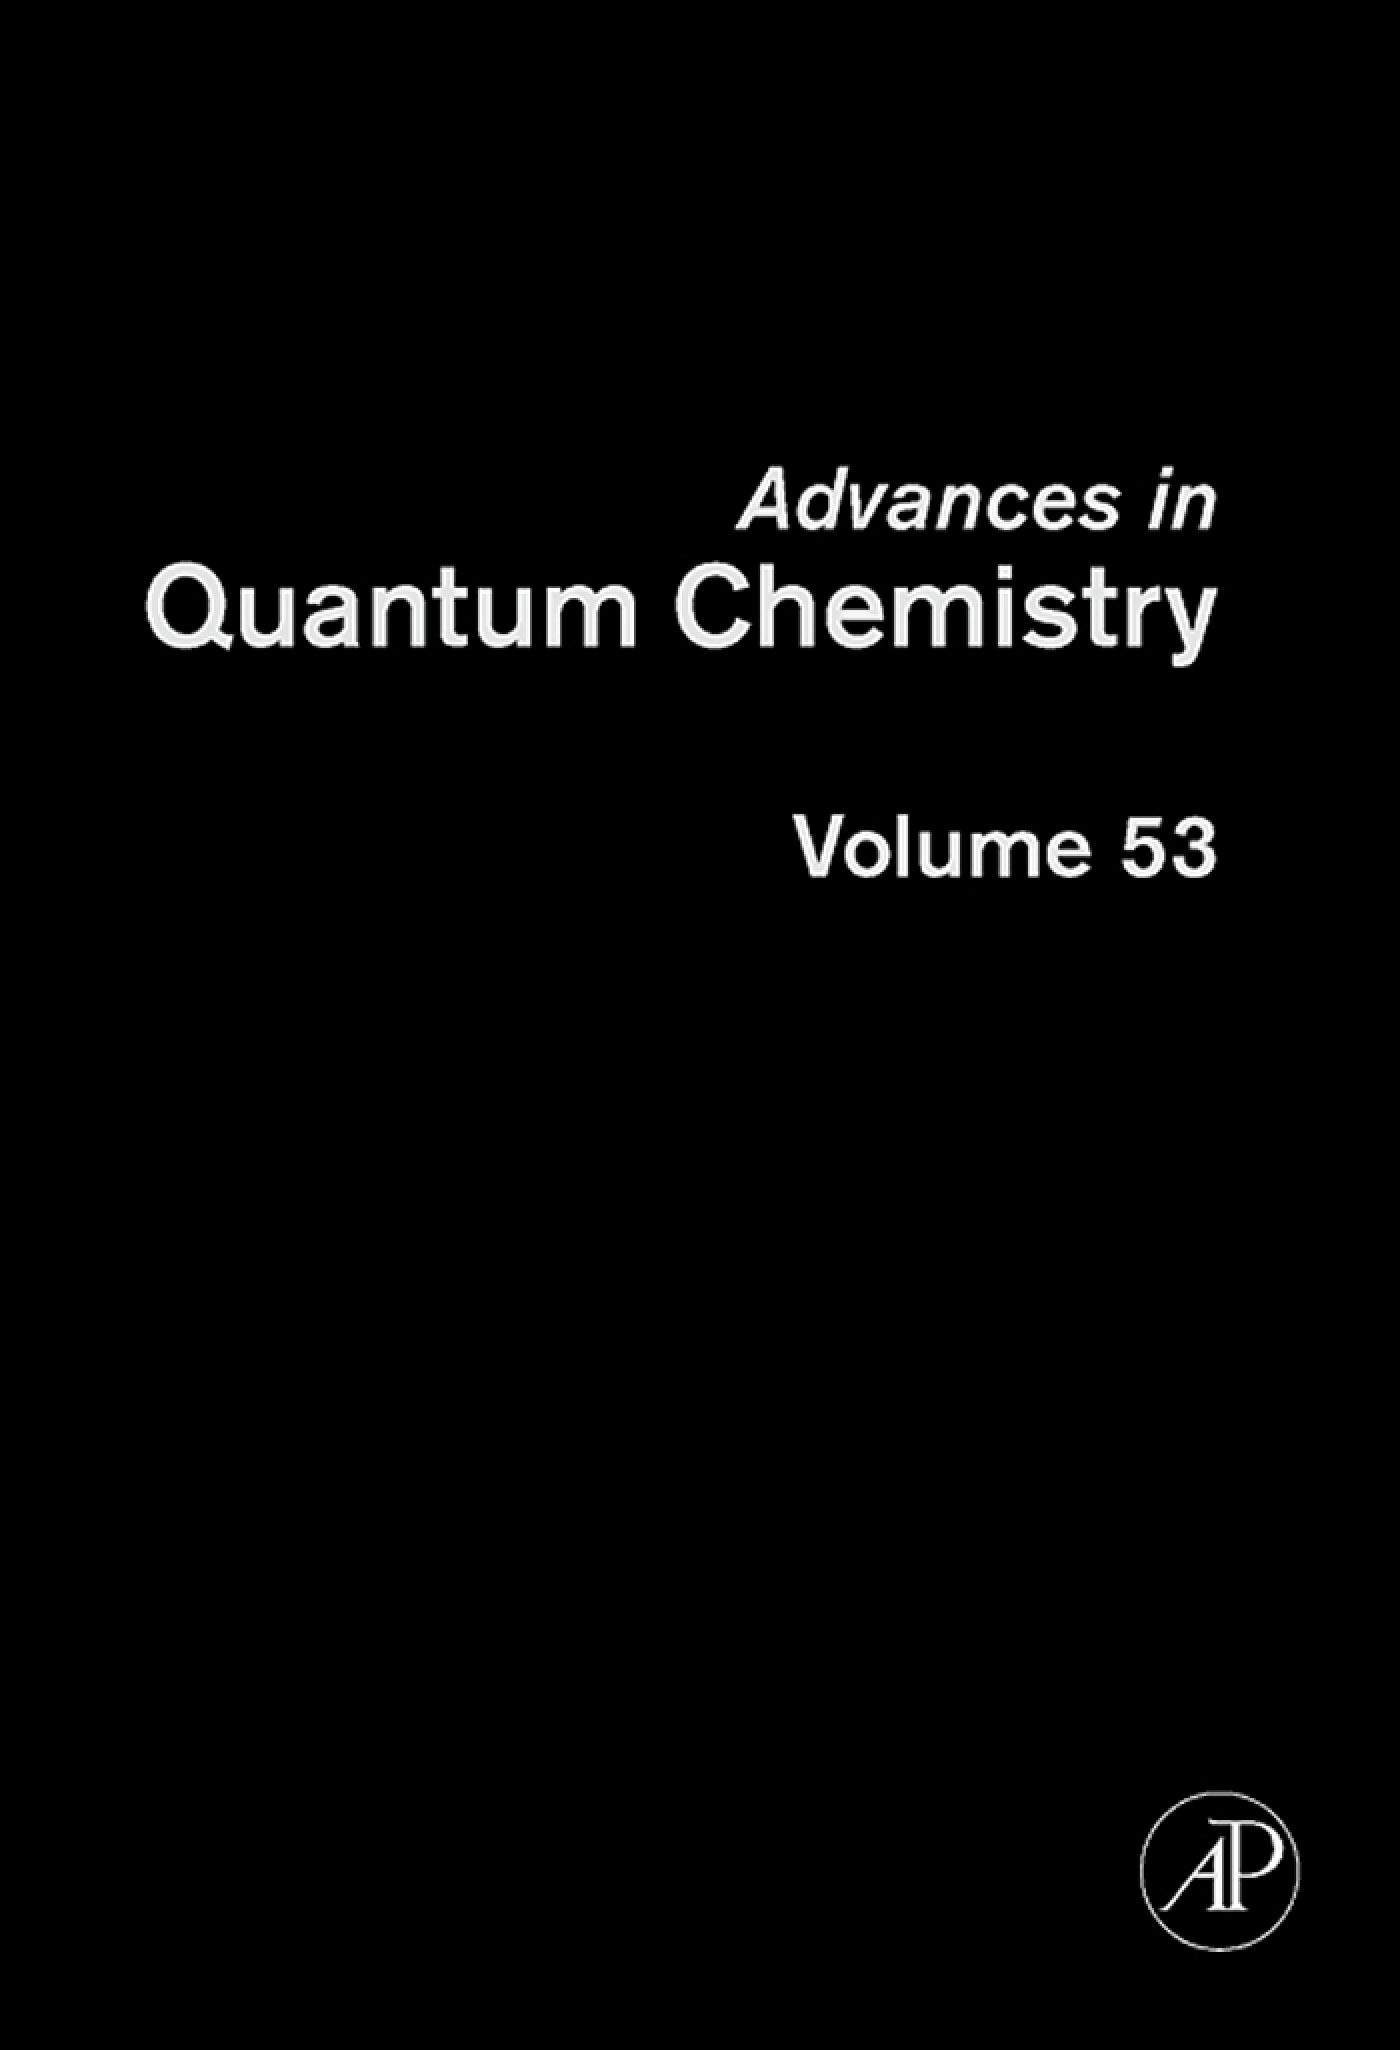 Advances in Quantum Chemistry: Current Trends in Atomic Physics